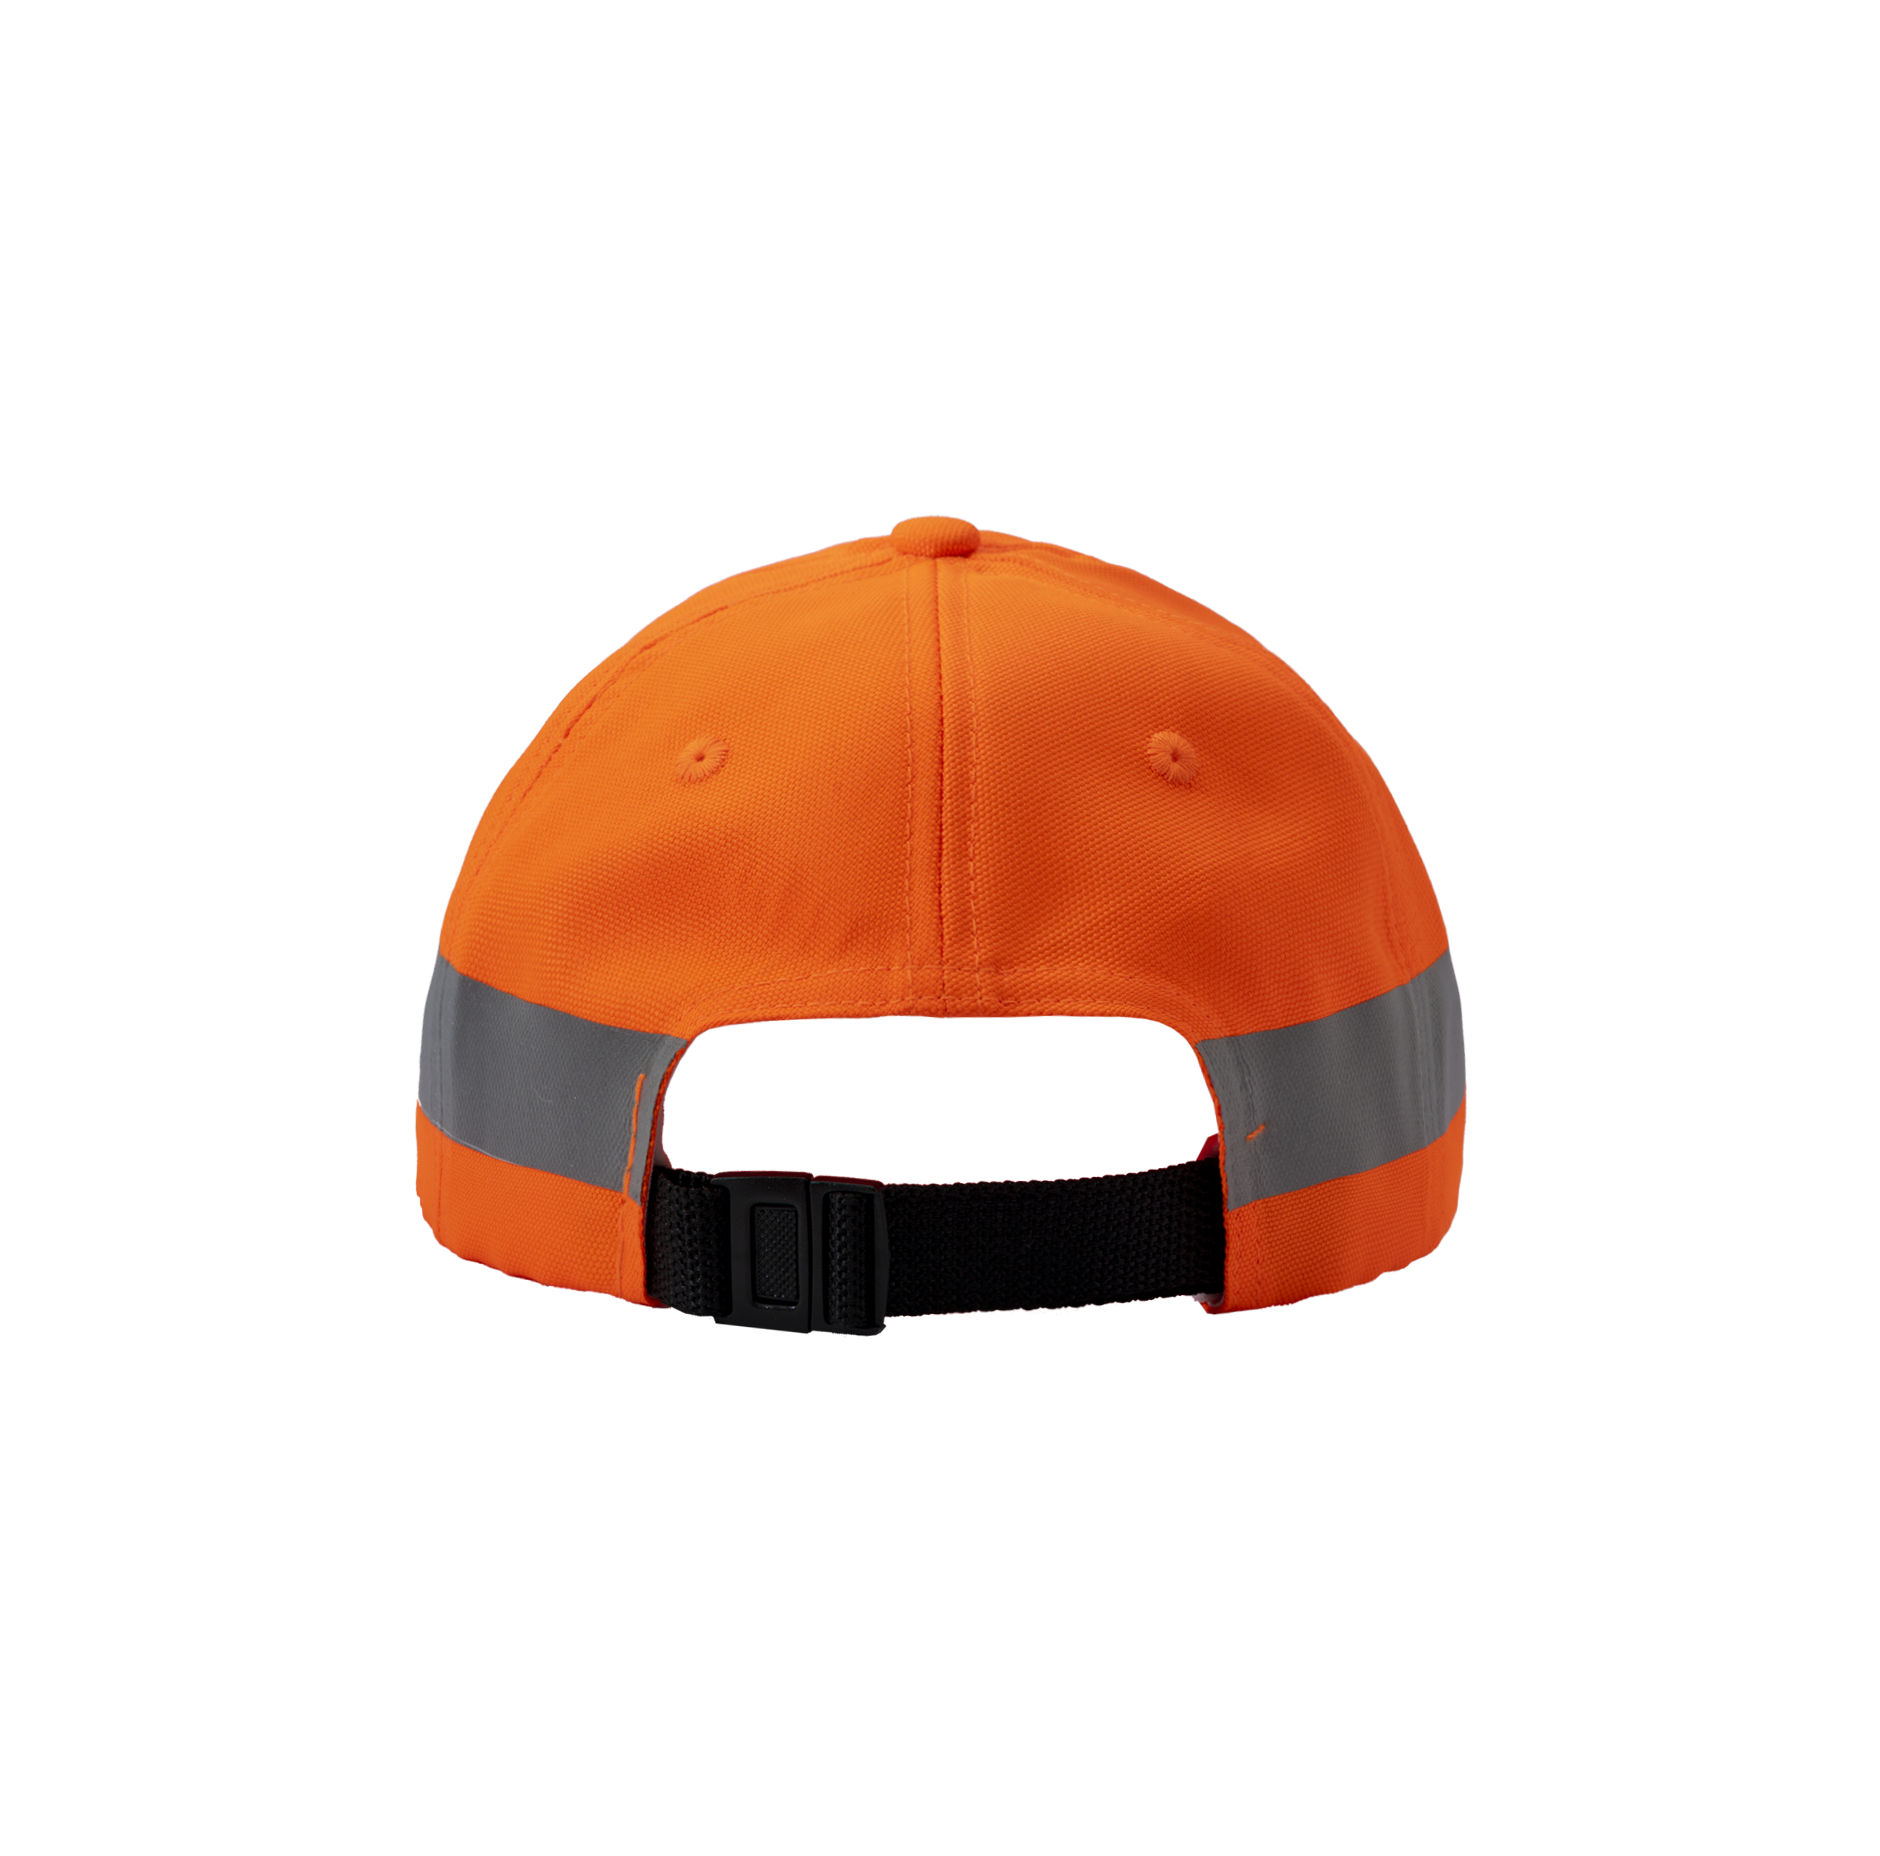 BADGE Reflective cap04.png